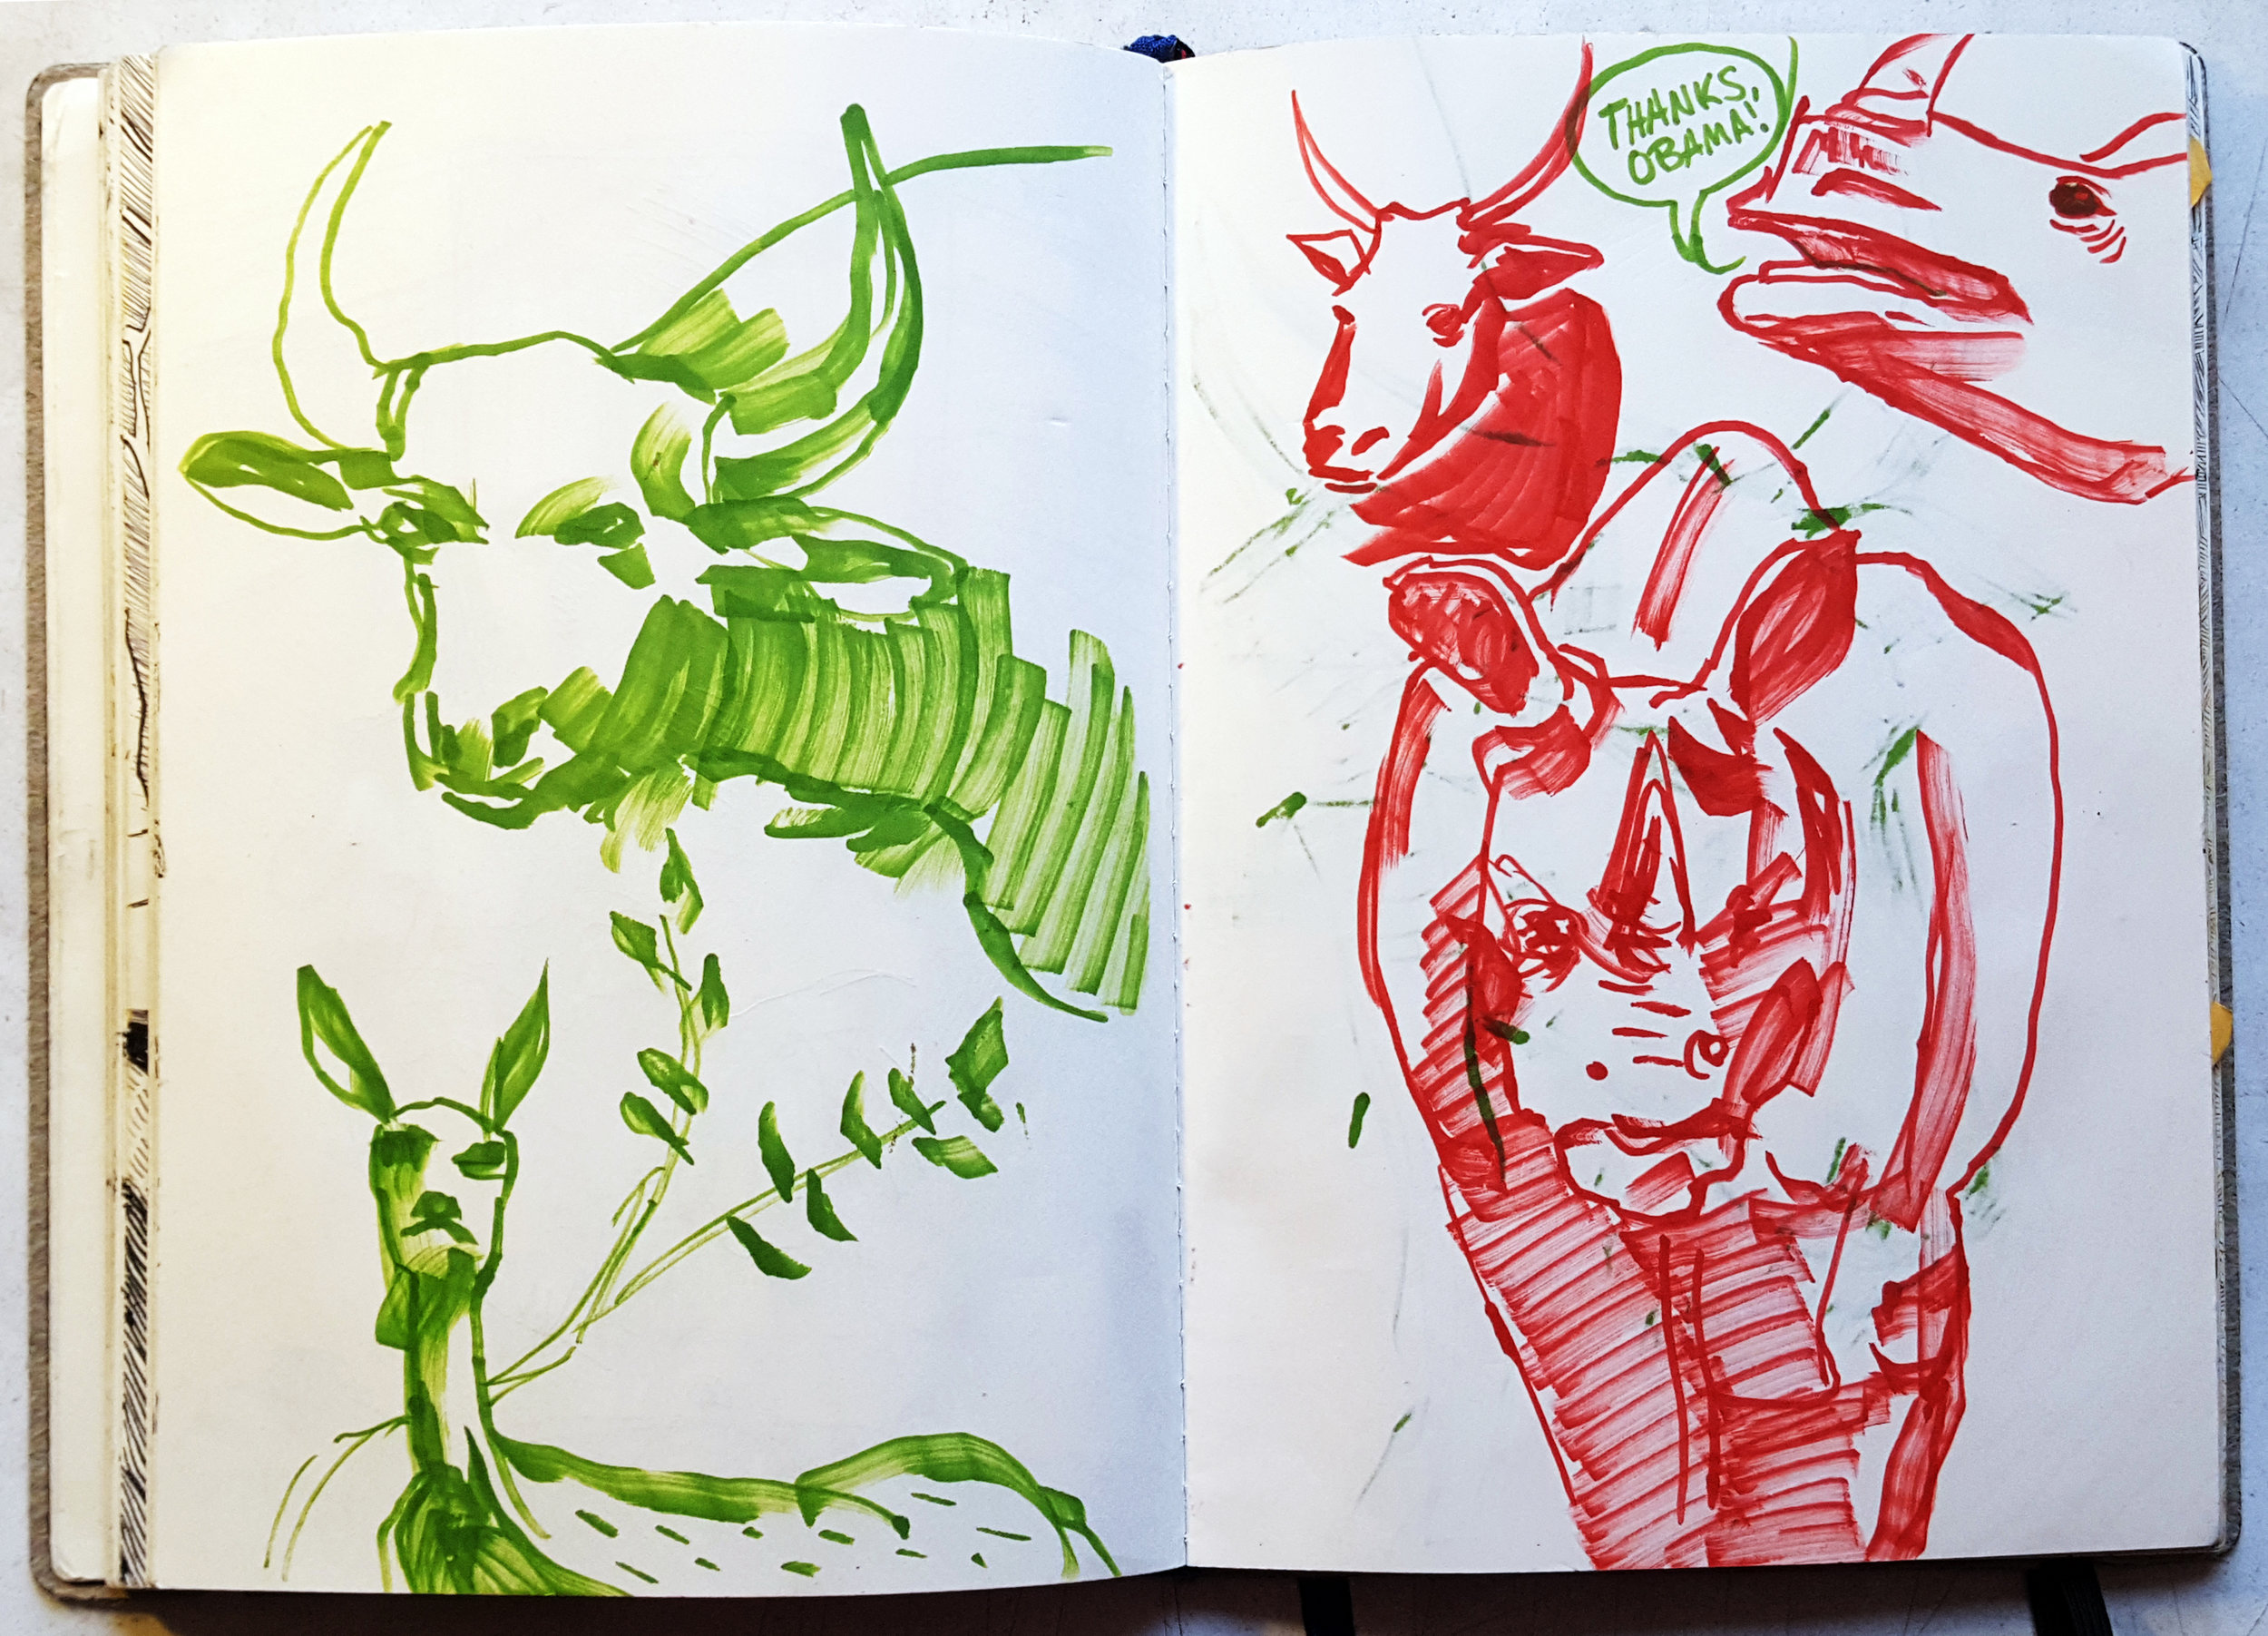 rhino thx obama sketchbook.jpg